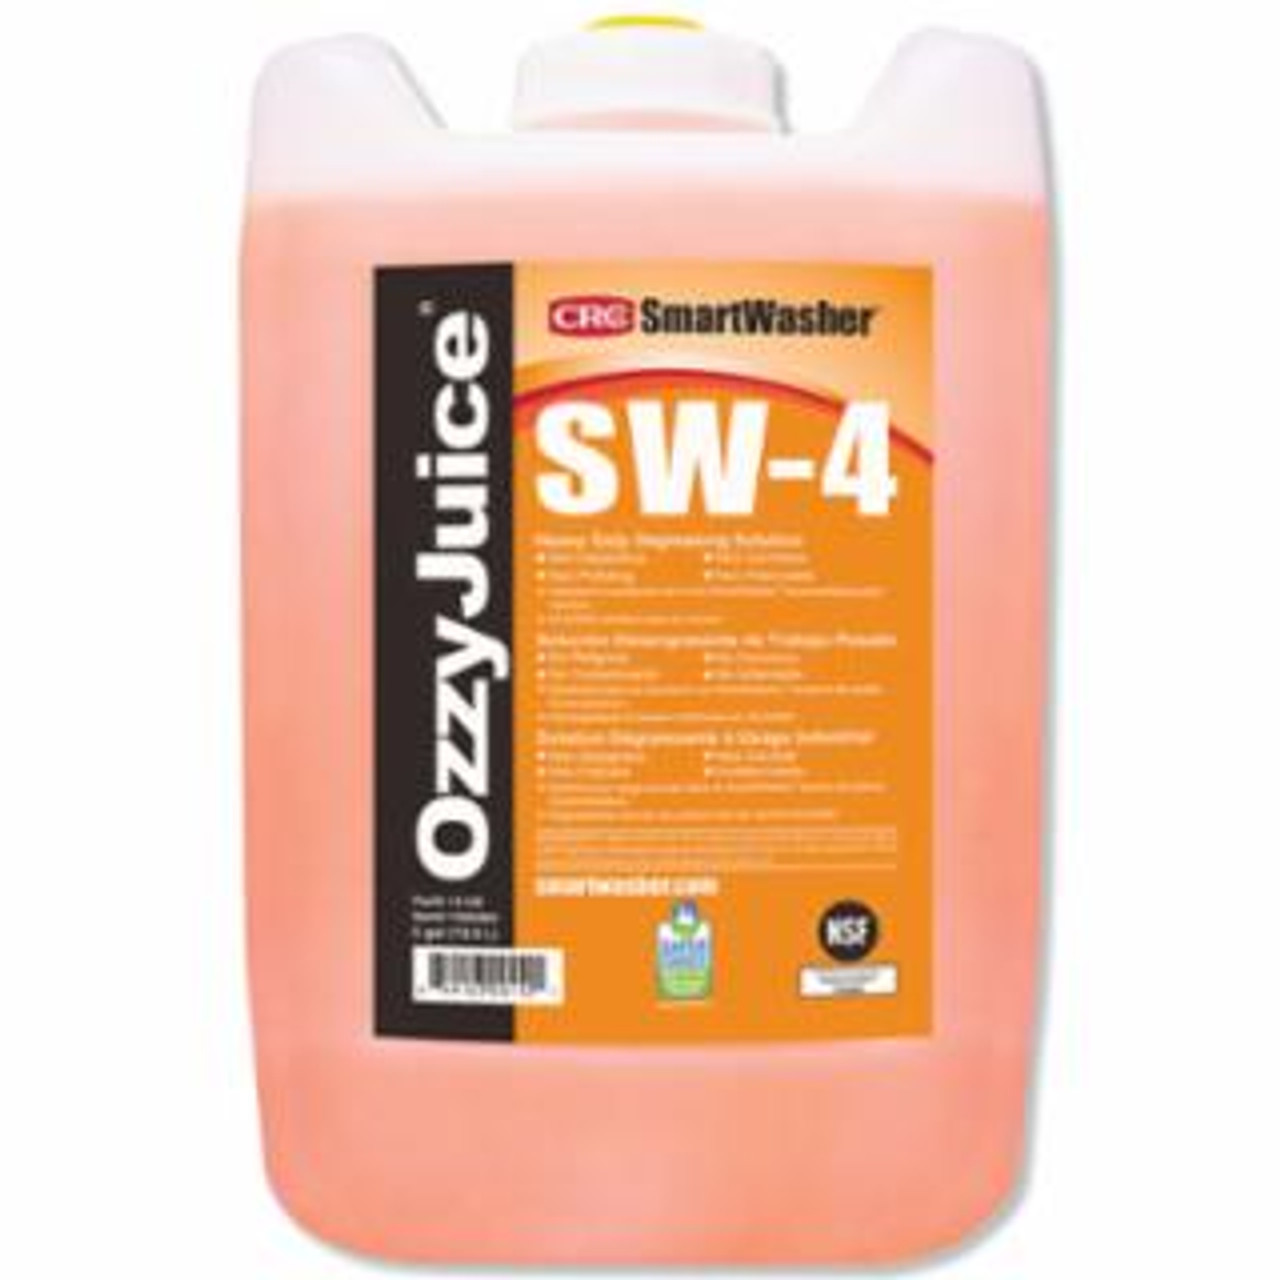 ORS SmartWasher OzzyJuice SW-4 Heavy-Duty 5-gal Jug Degreasing Solution EDP: 125-14148